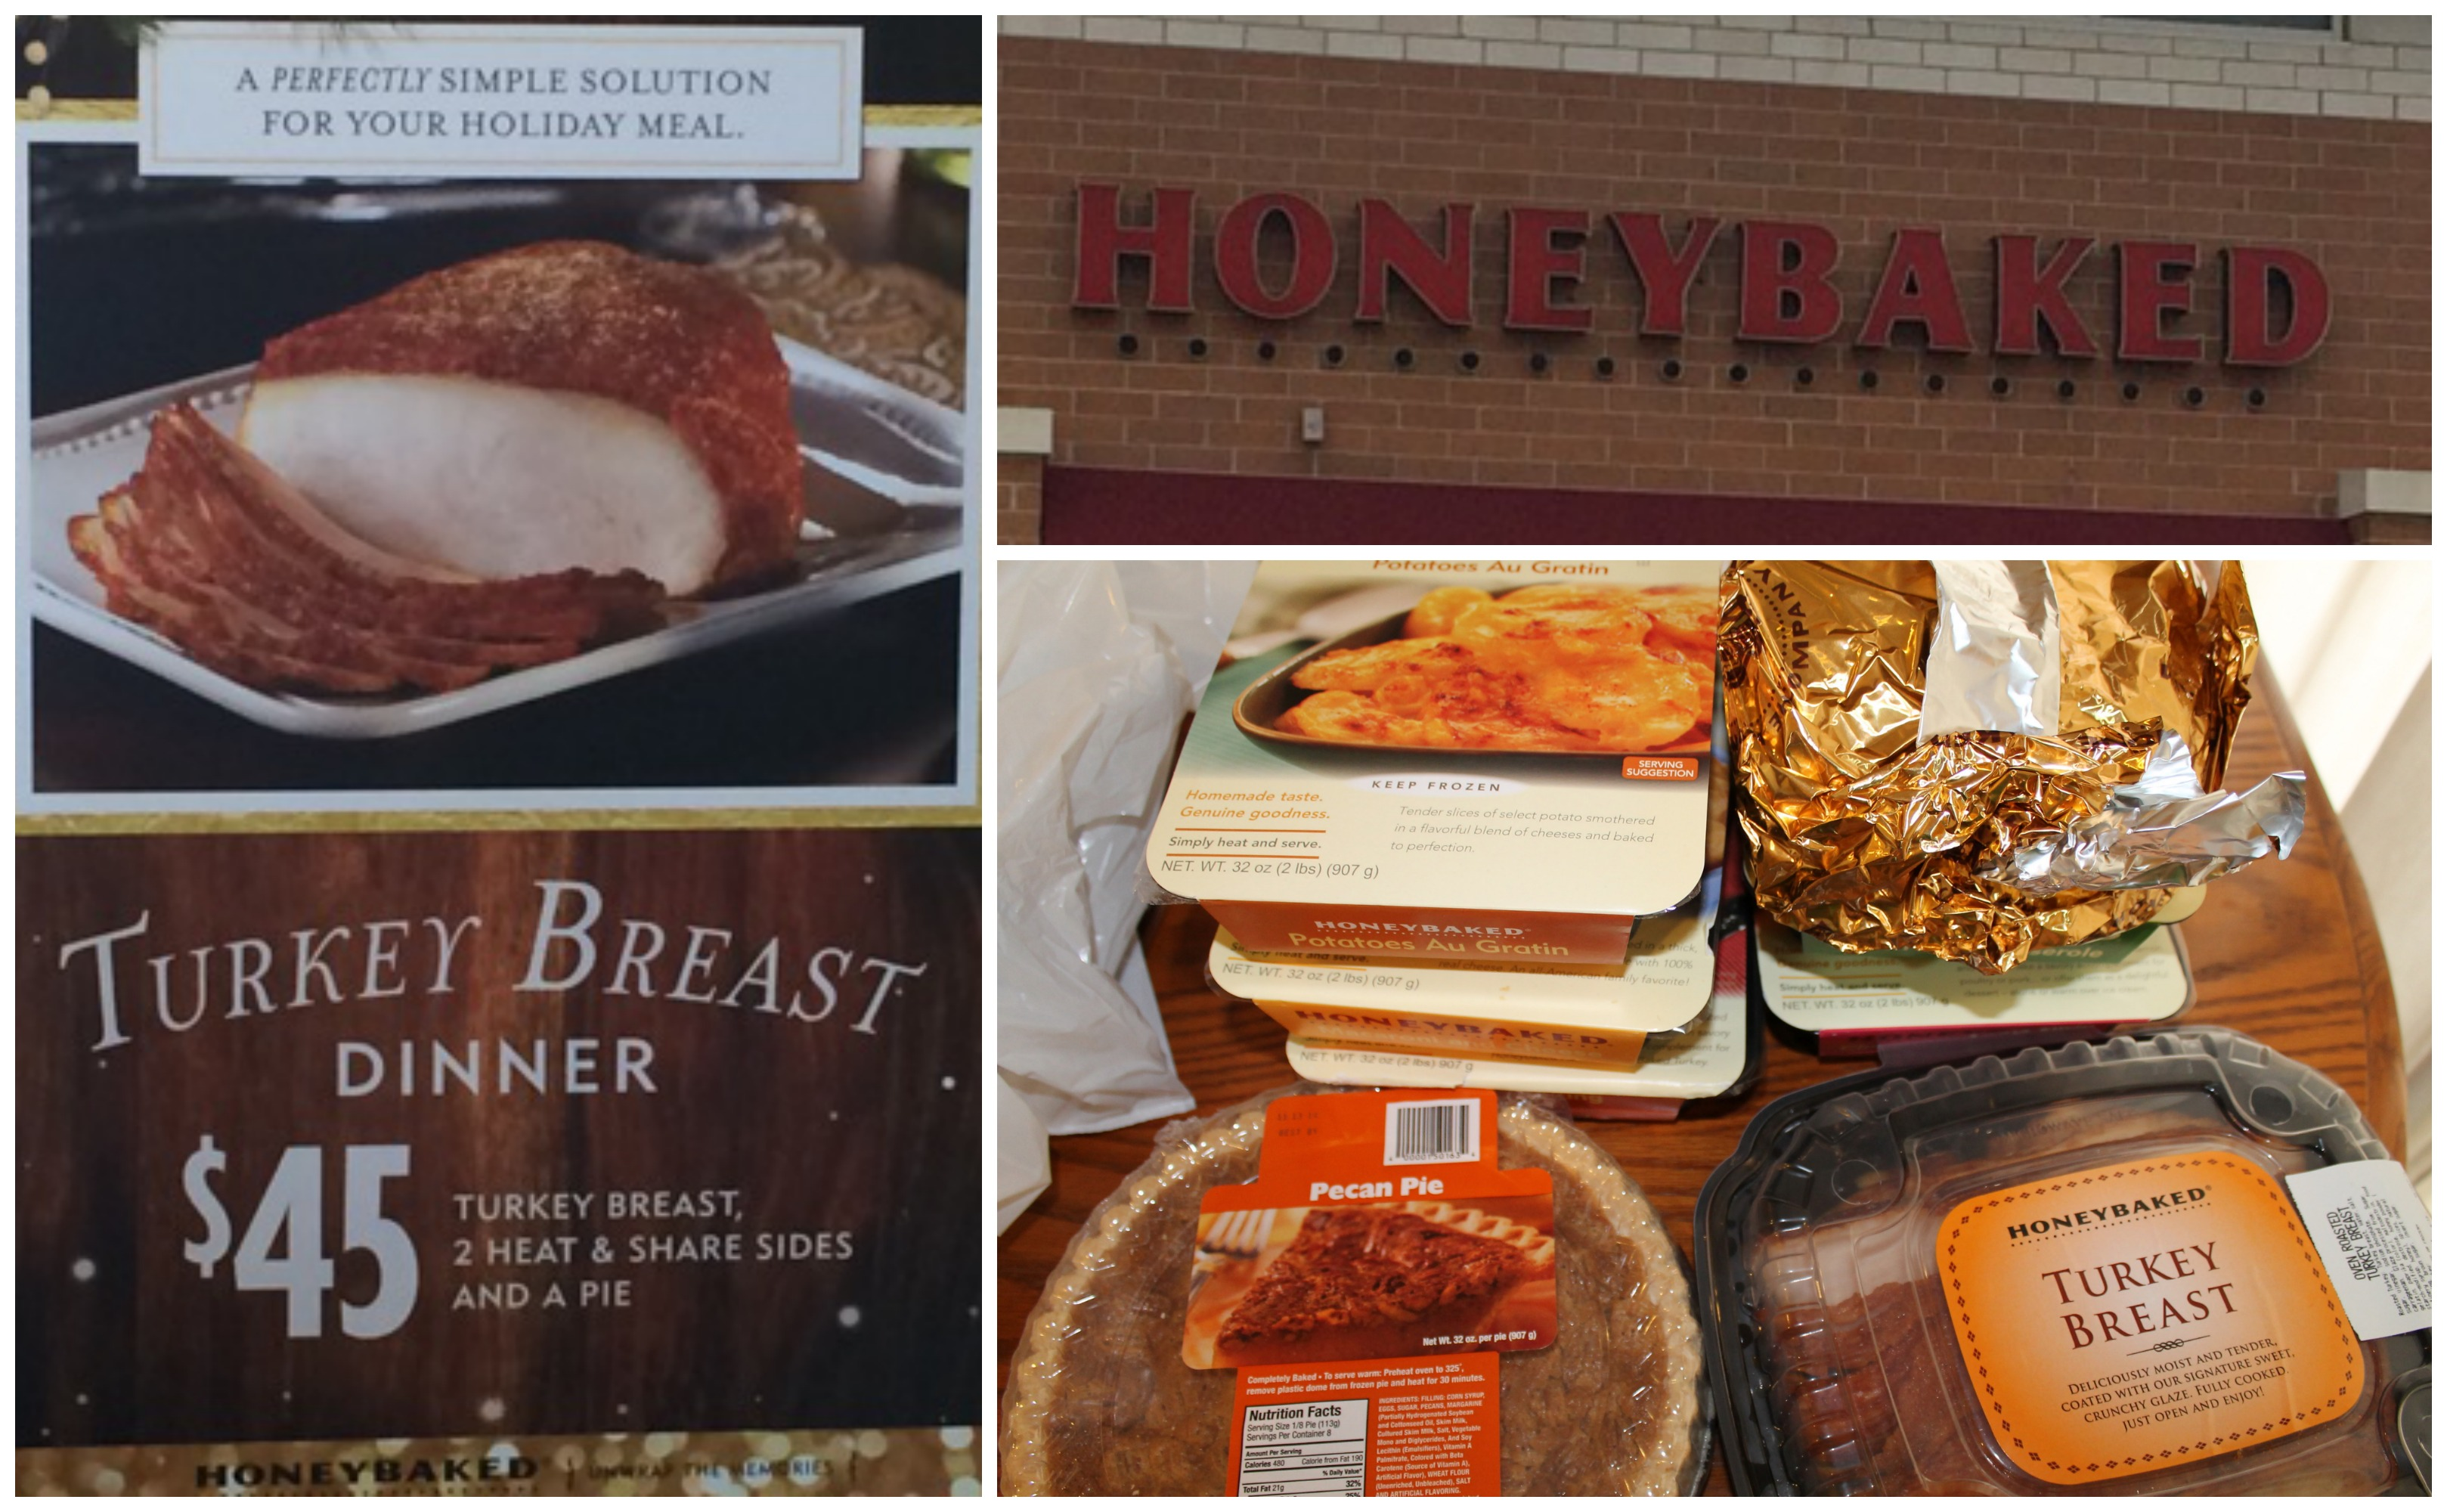 Easy Thanksgiving Meals With Honeybaked Ham And Turkey Giveaway